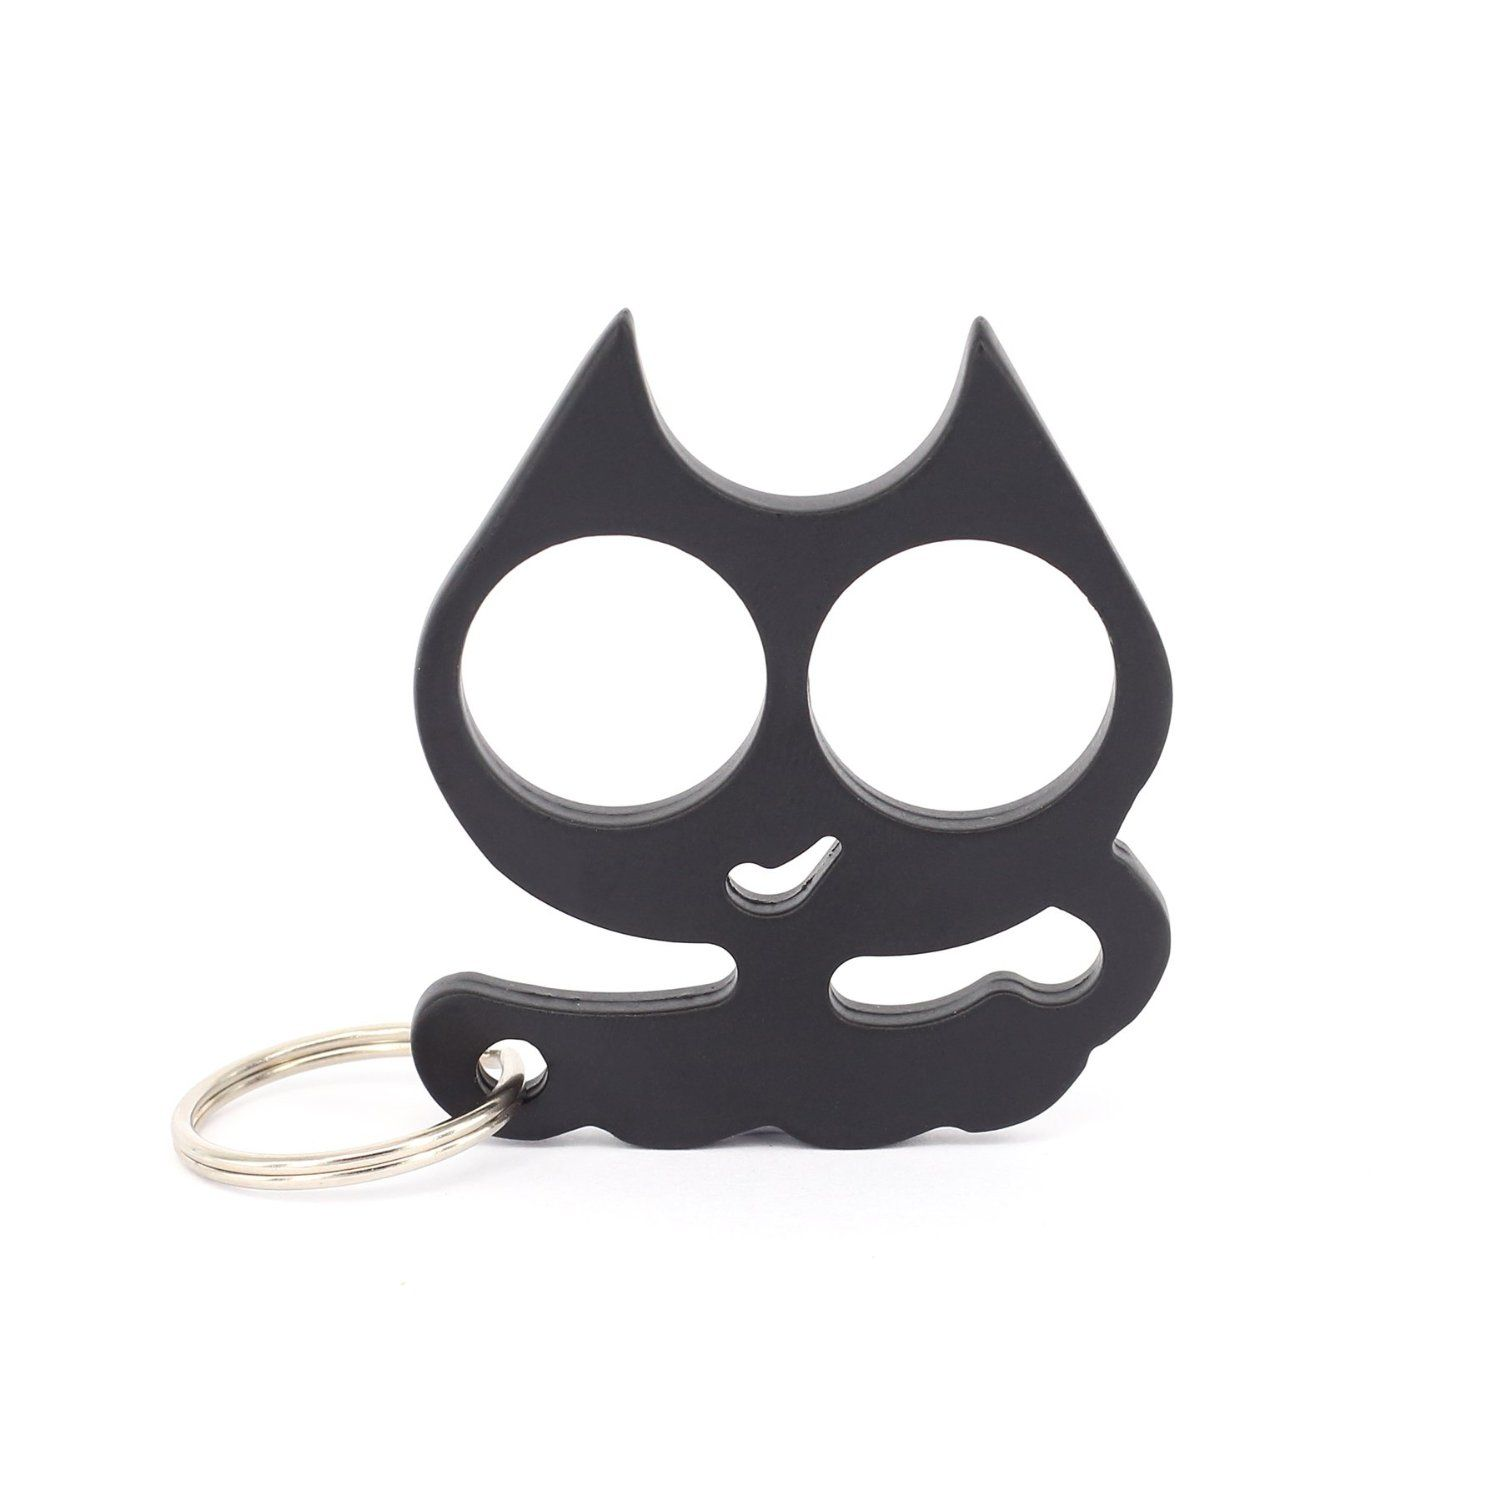 Robot Check Self Defense Keychain Cat Keychain Cat Self Defense Keychain